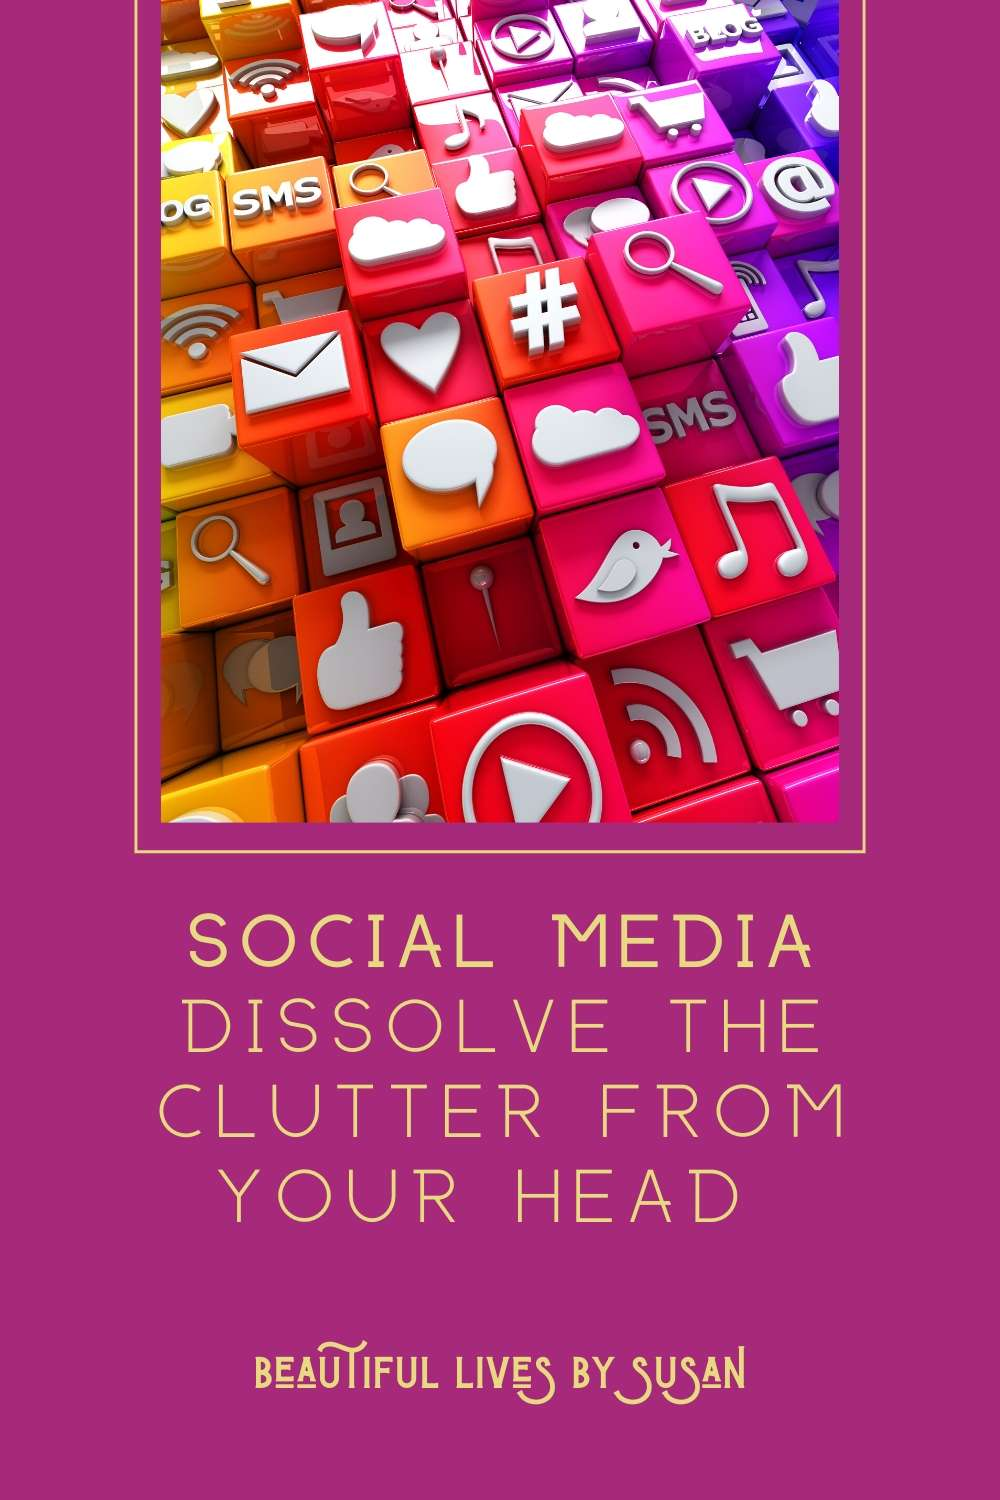 Social Media • Dissolve the Clutter from Your Head